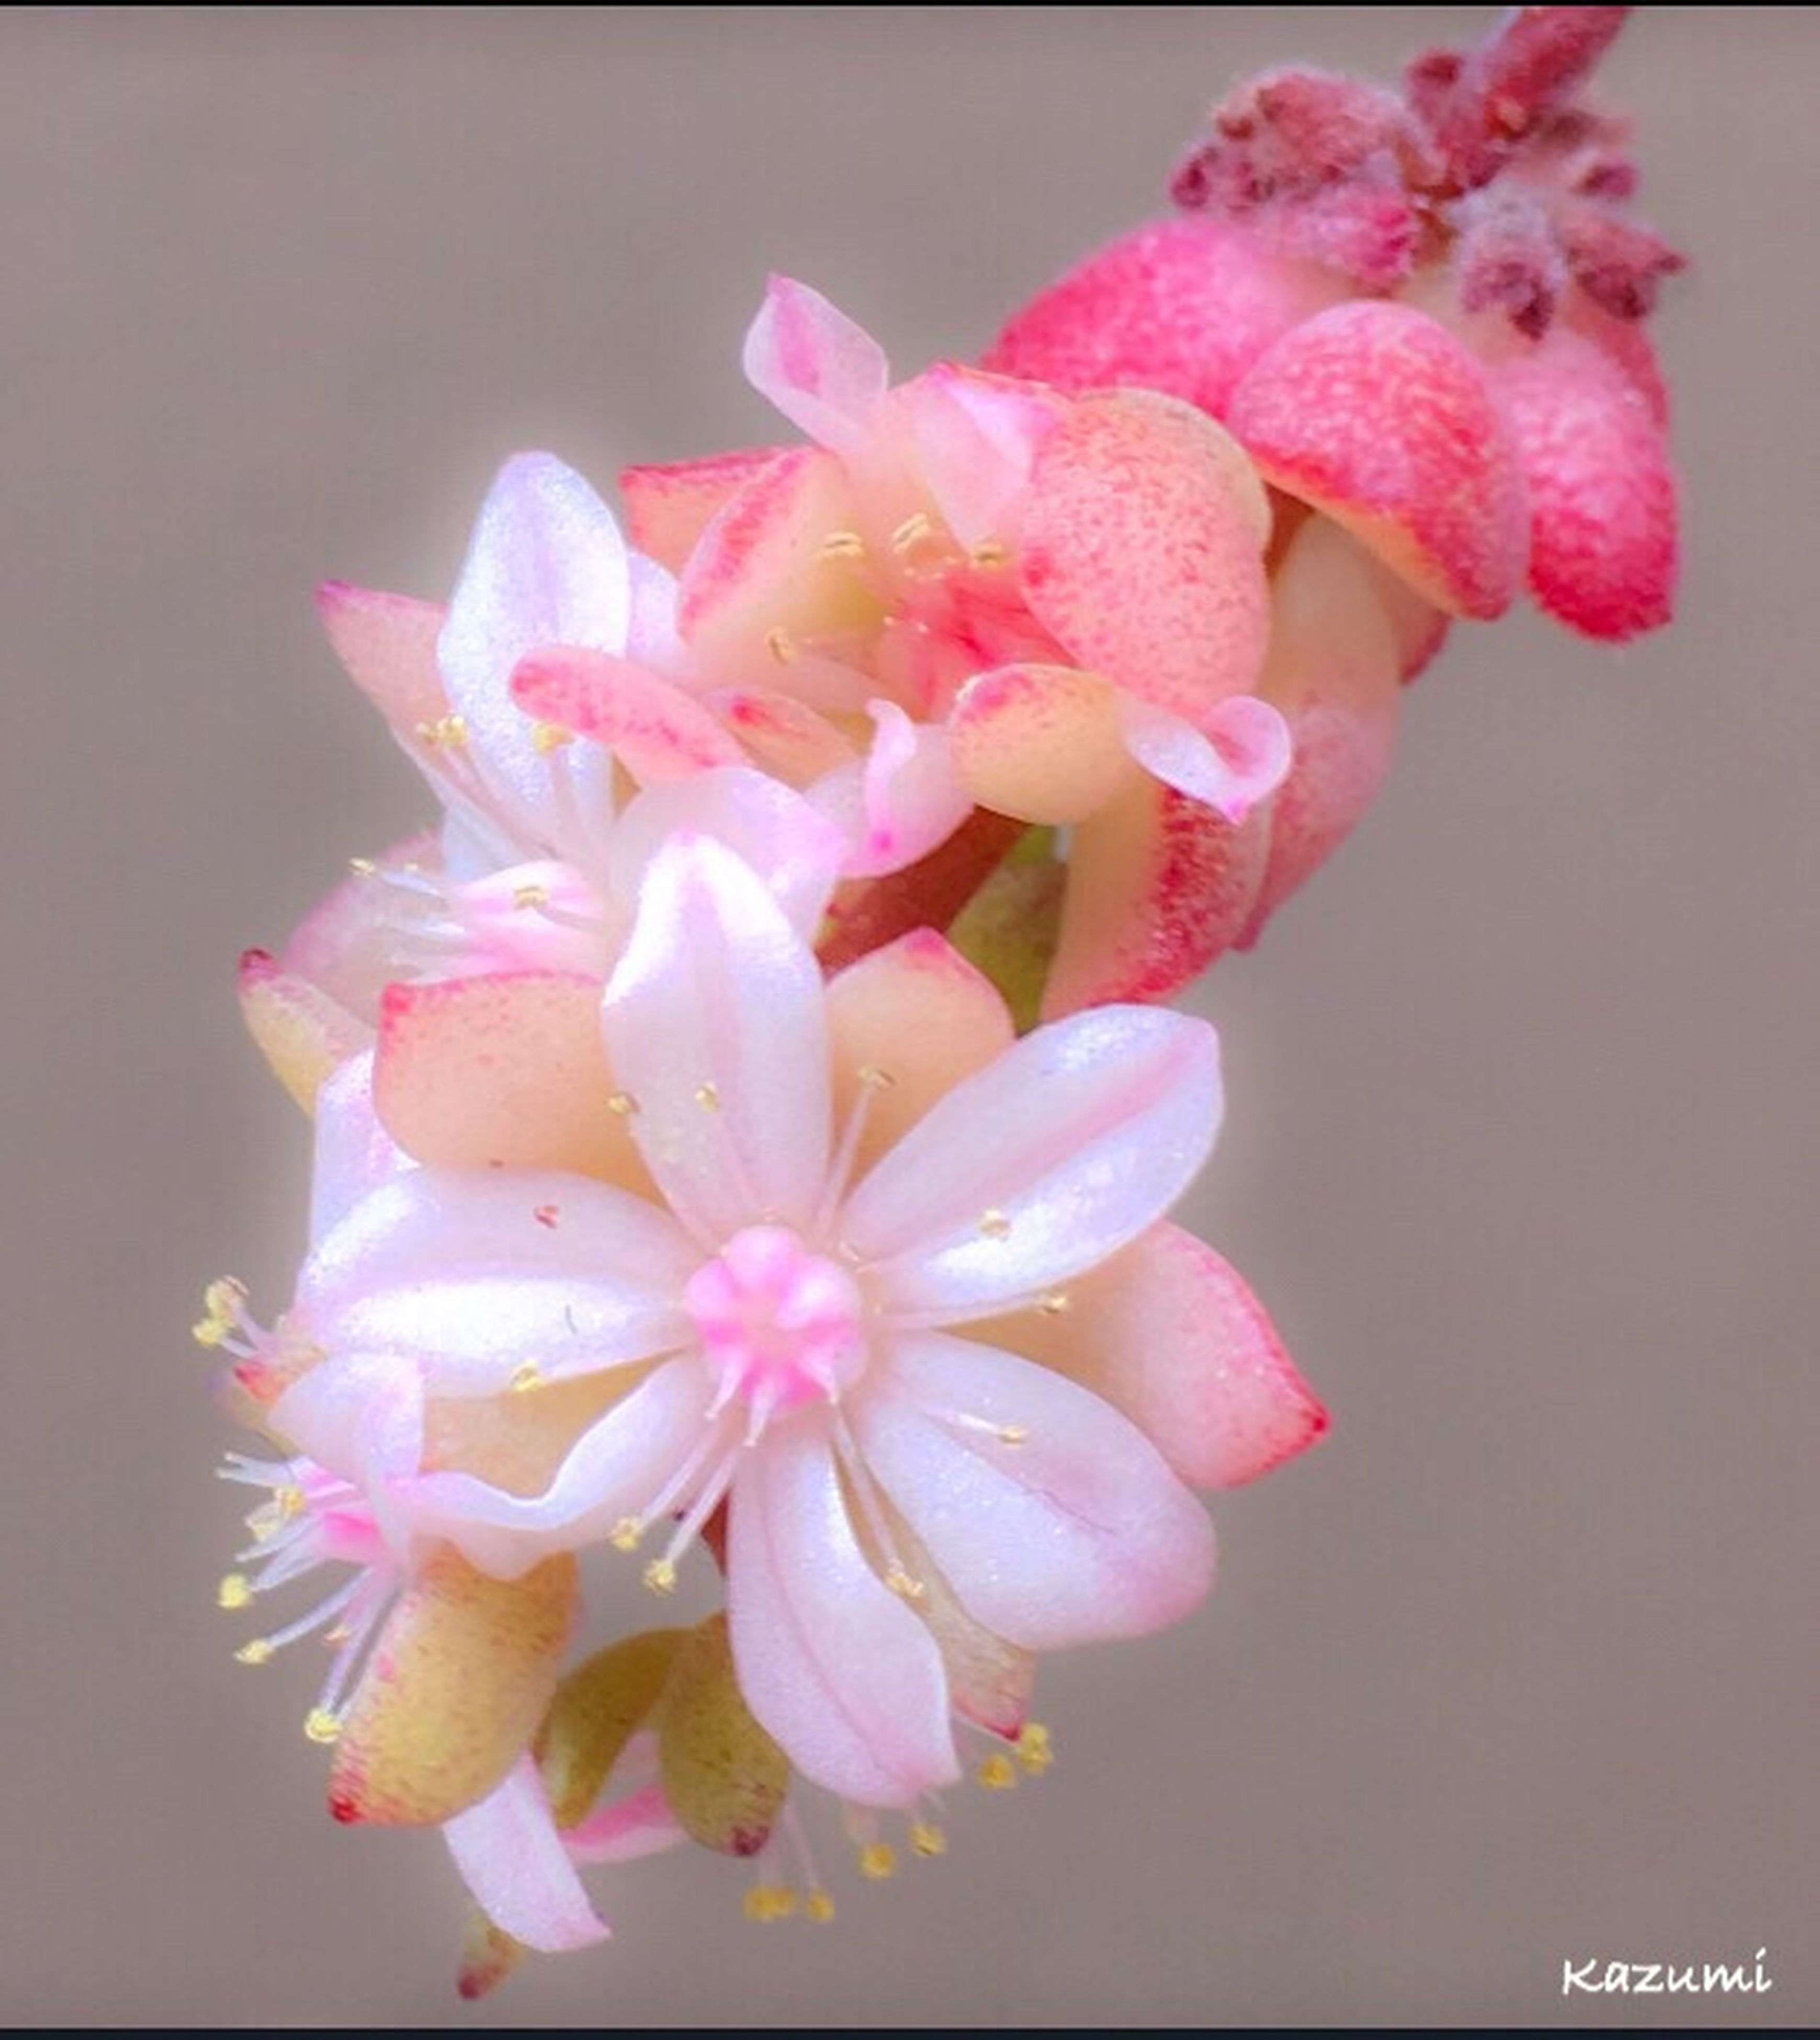 flower, freshness, petal, pink color, no people, fragility, beauty in nature, flower head, close-up, nature, day, outdoors